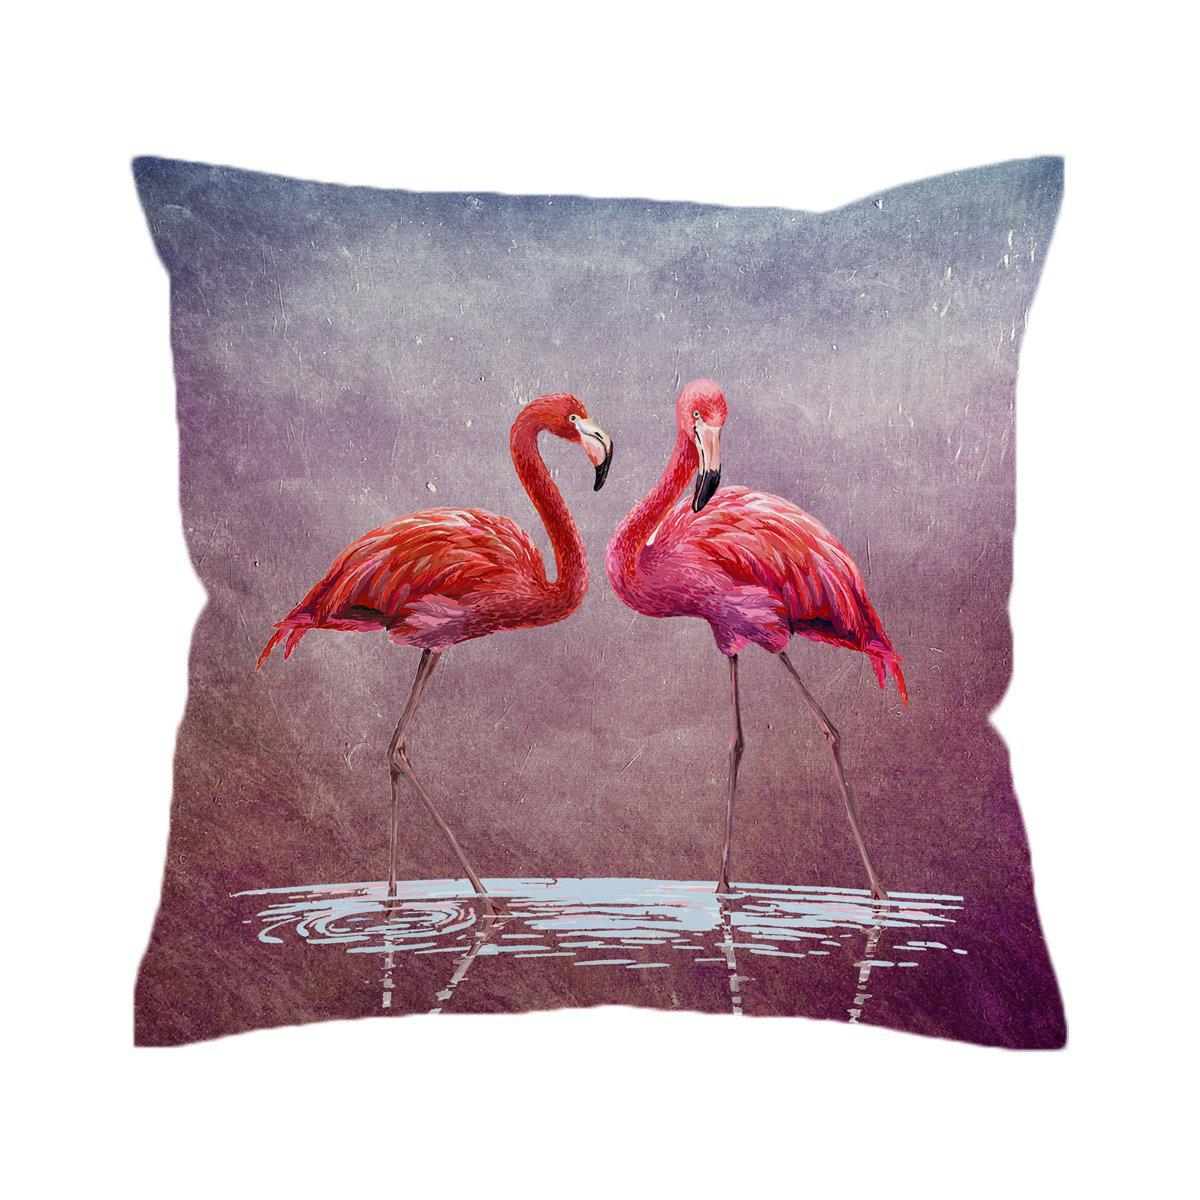 Ladies in Pink Pillow Cover-Coastal Passion